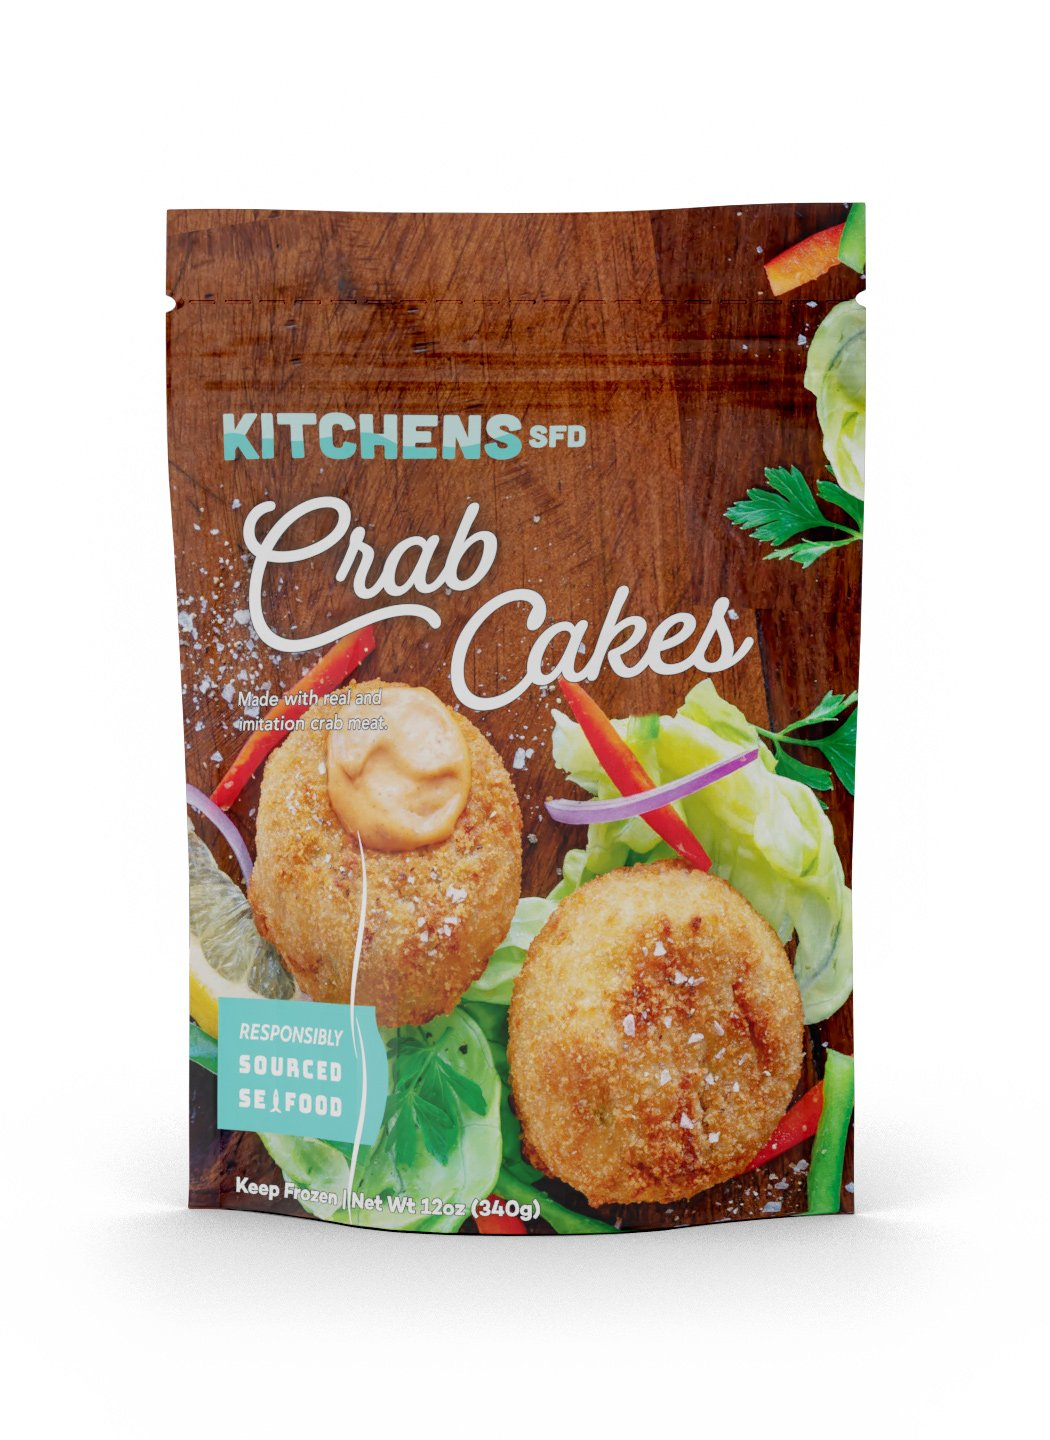 kitchens_seafood-crab_cakes